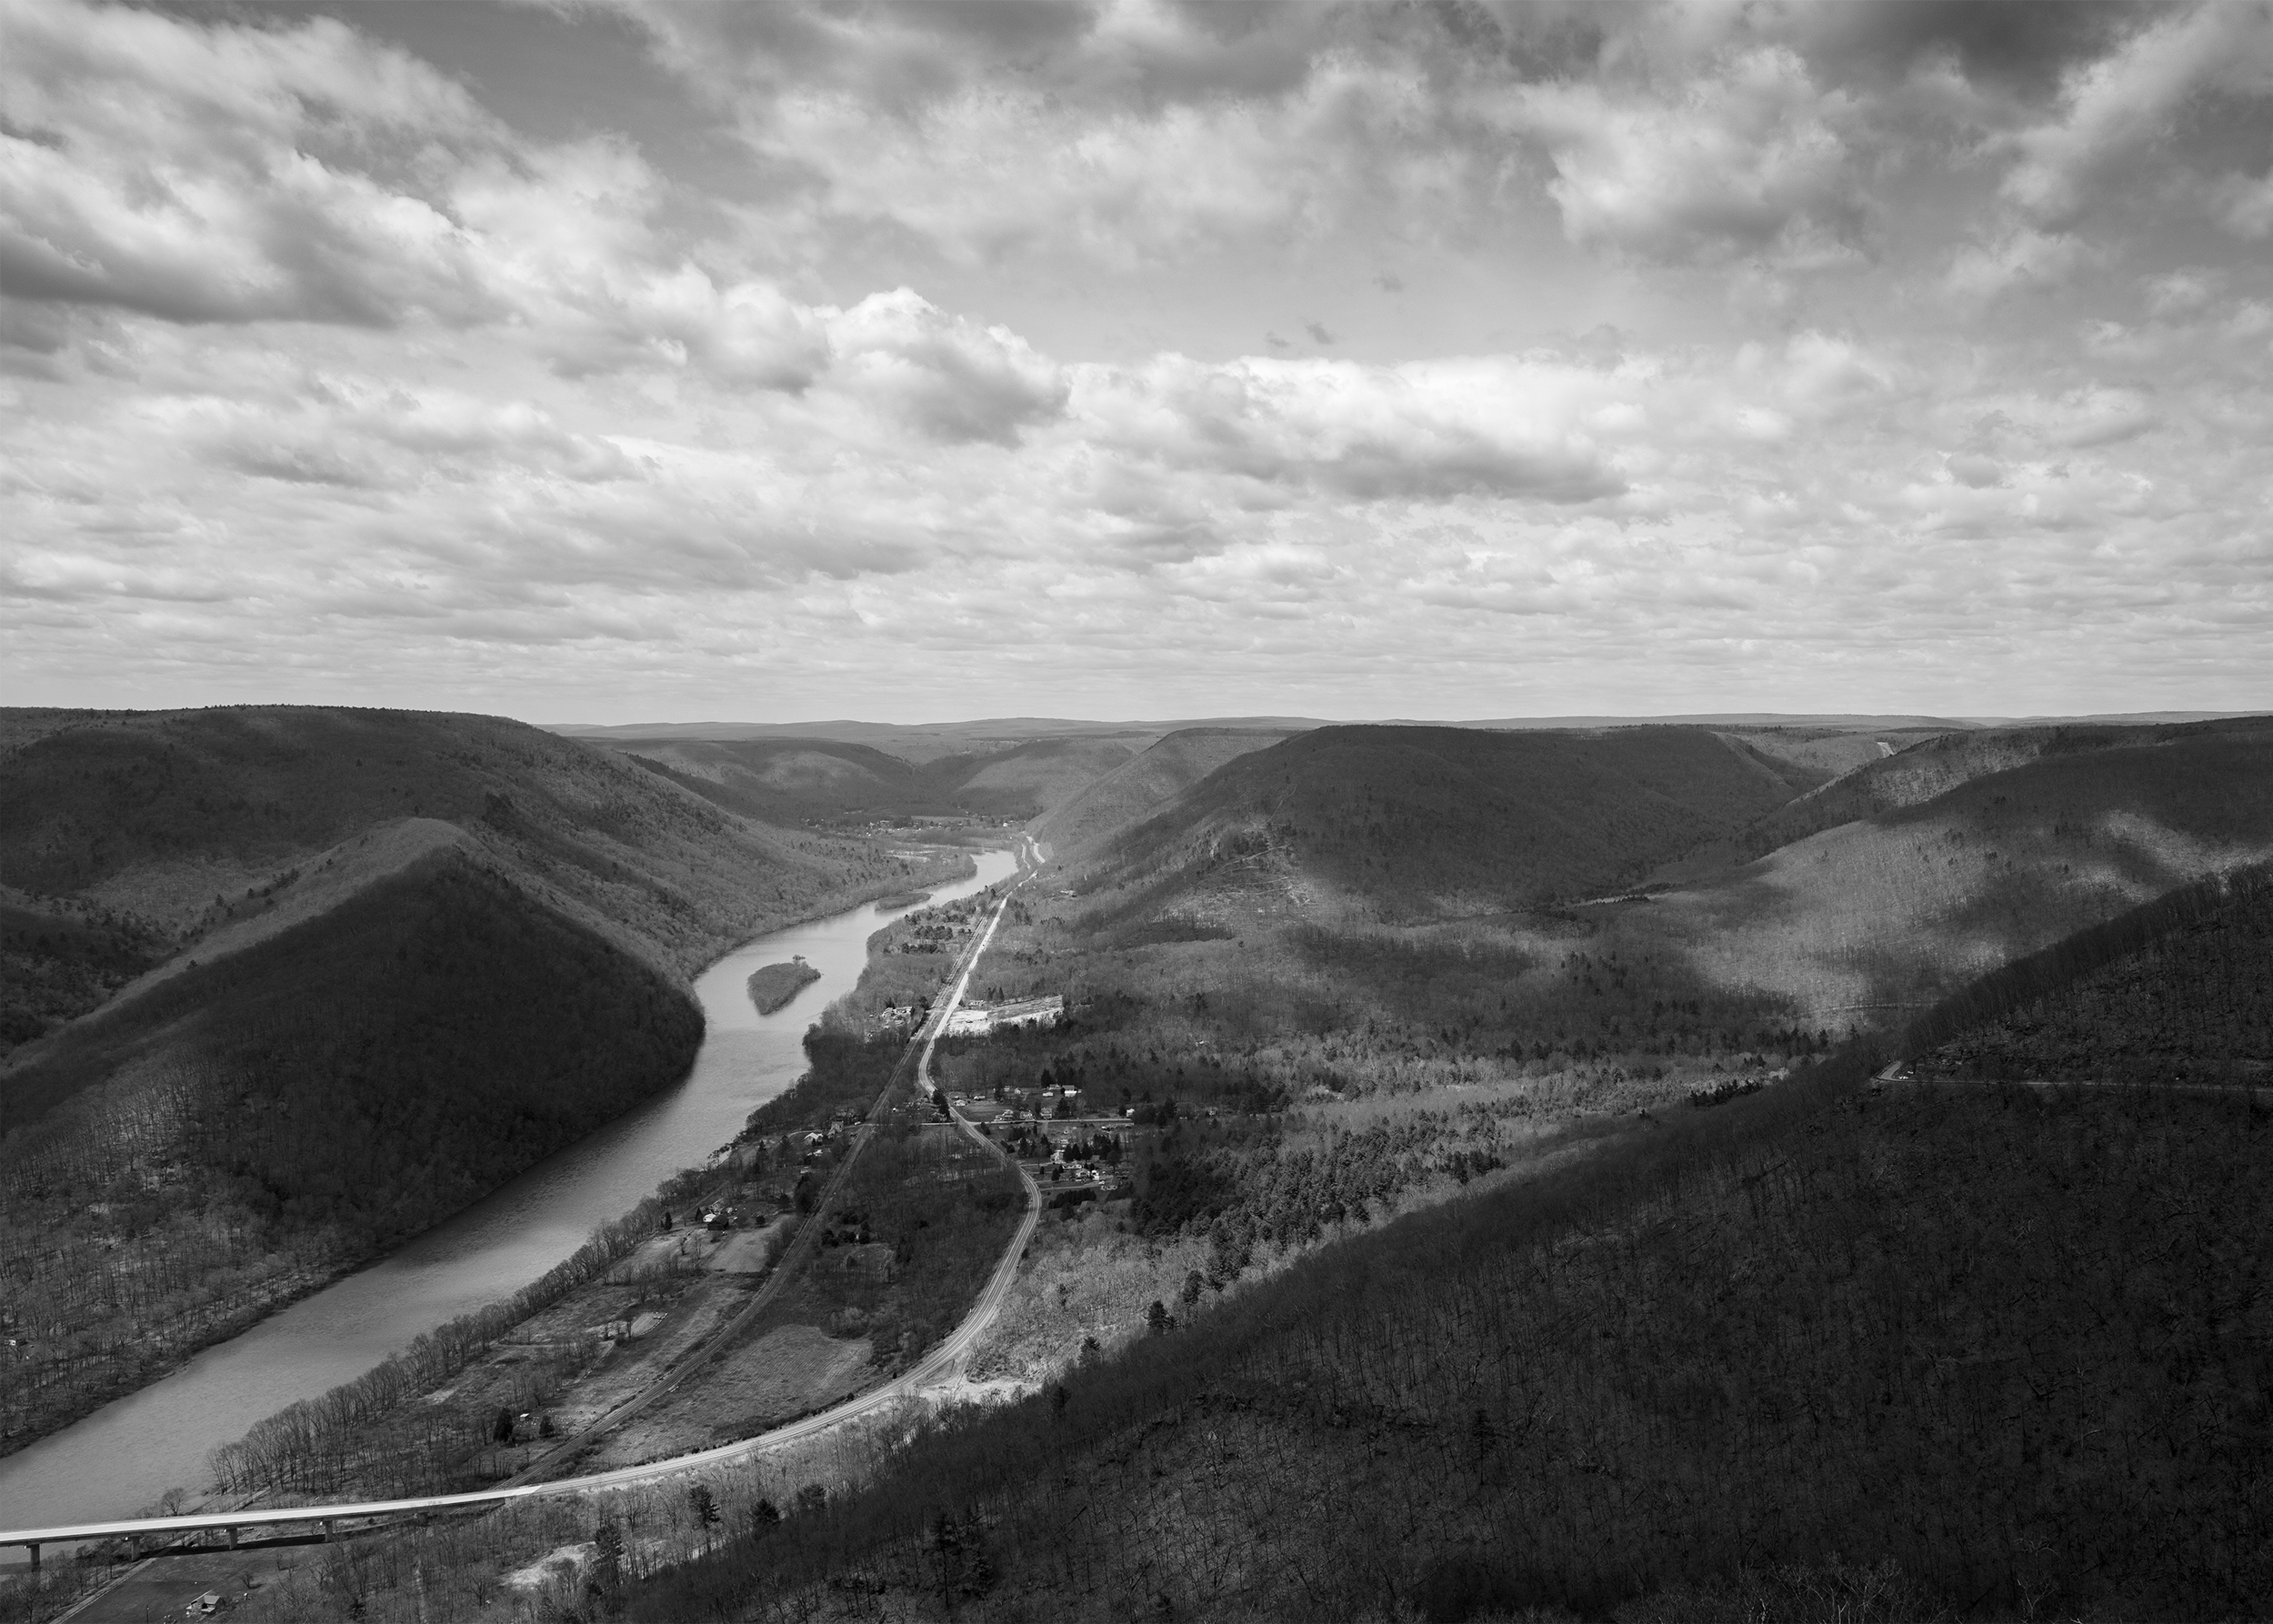 Susquehanna Valley from Hyner View, North Bend, Pennsylvania